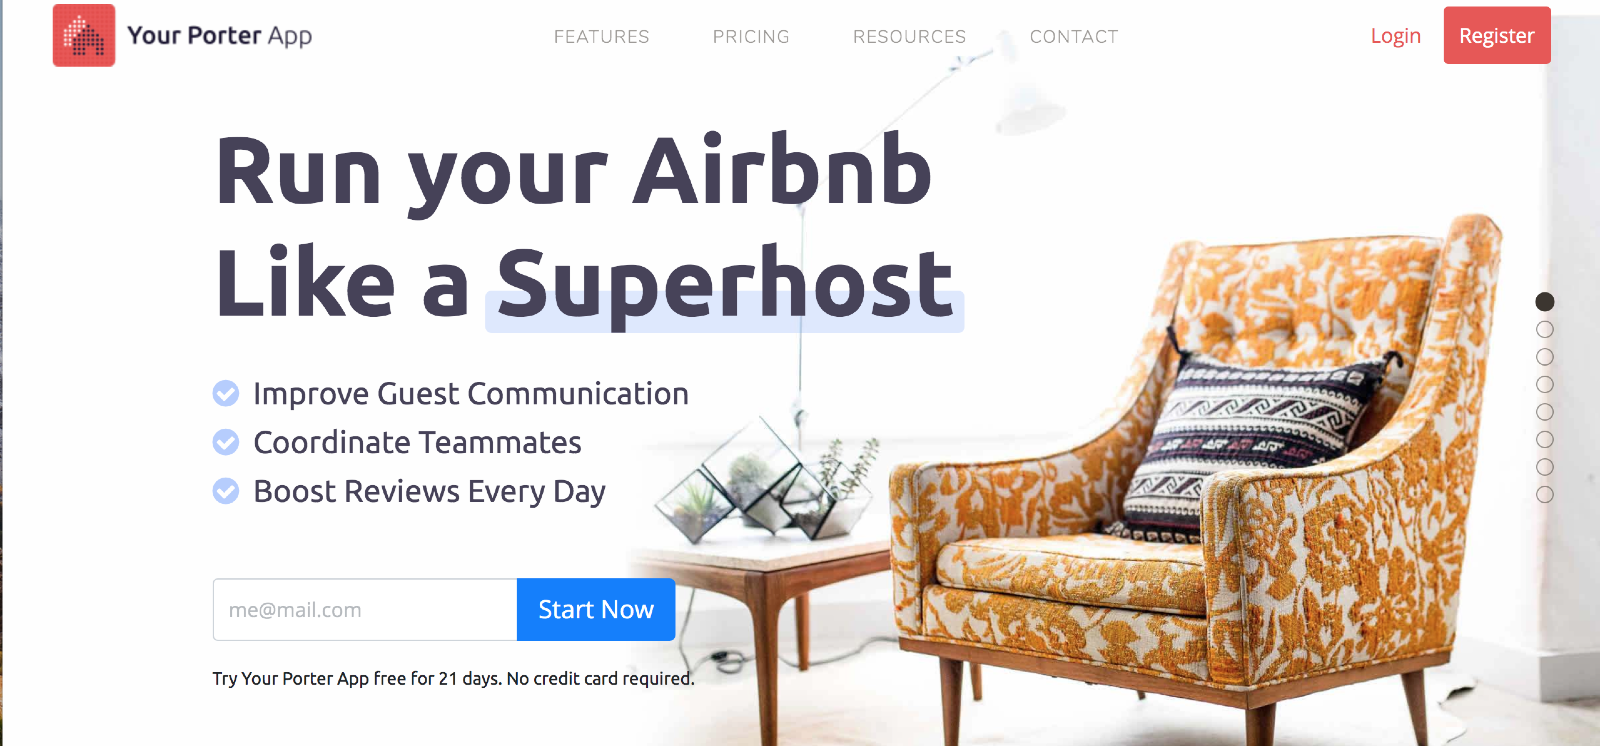 your porter airbnb hosting software